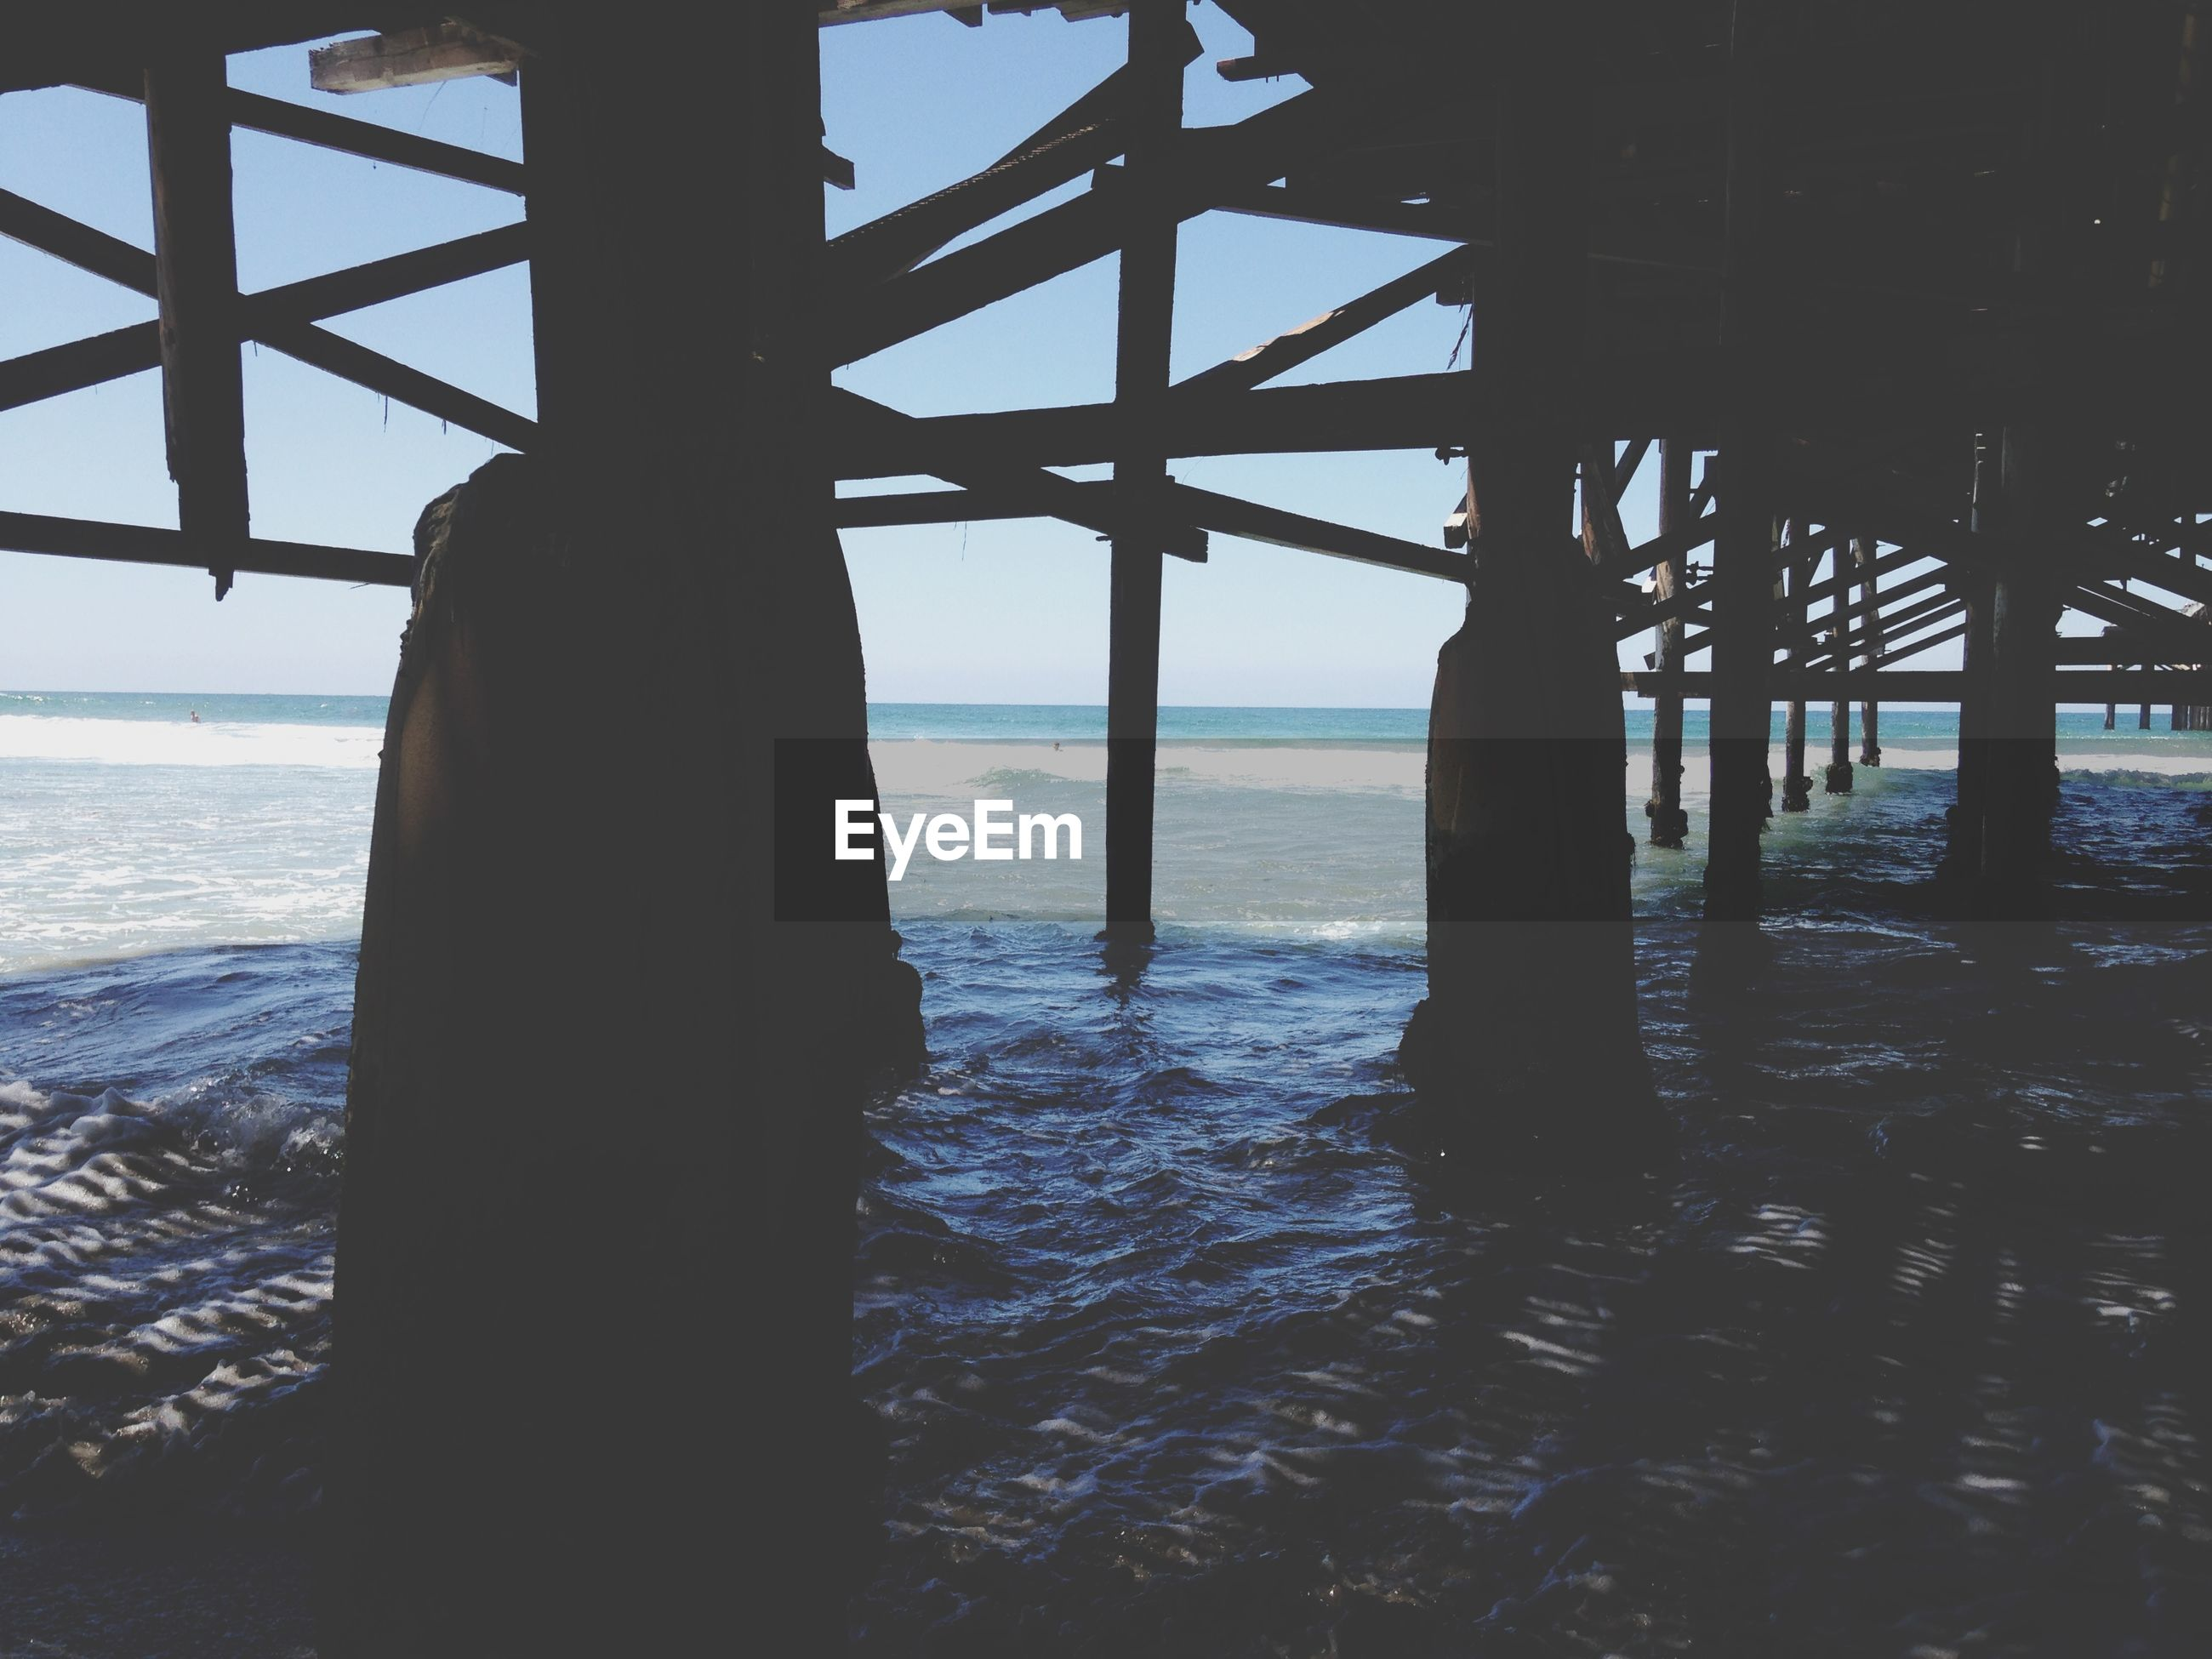 sea, water, horizon over water, built structure, sky, pier, architecture, beach, tranquility, tranquil scene, nature, scenics, architectural column, sunset, silhouette, beauty in nature, shore, no people, column, support